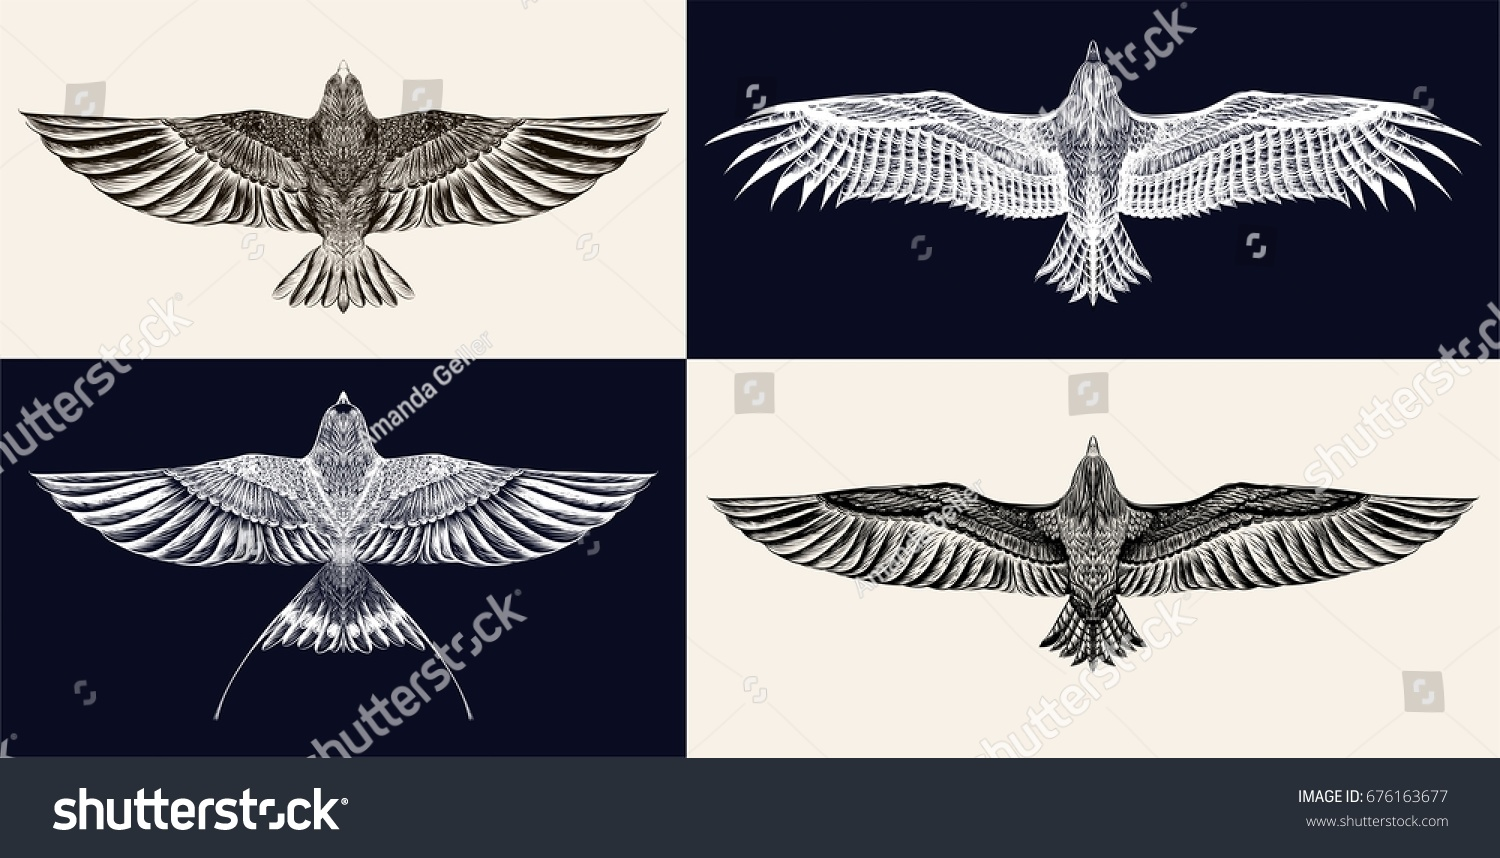 Set of sketches of flying swallows stock vector illustration - Set Of Hand Drawn Birds Eagles And Swallows Black And White Illustration Detailed